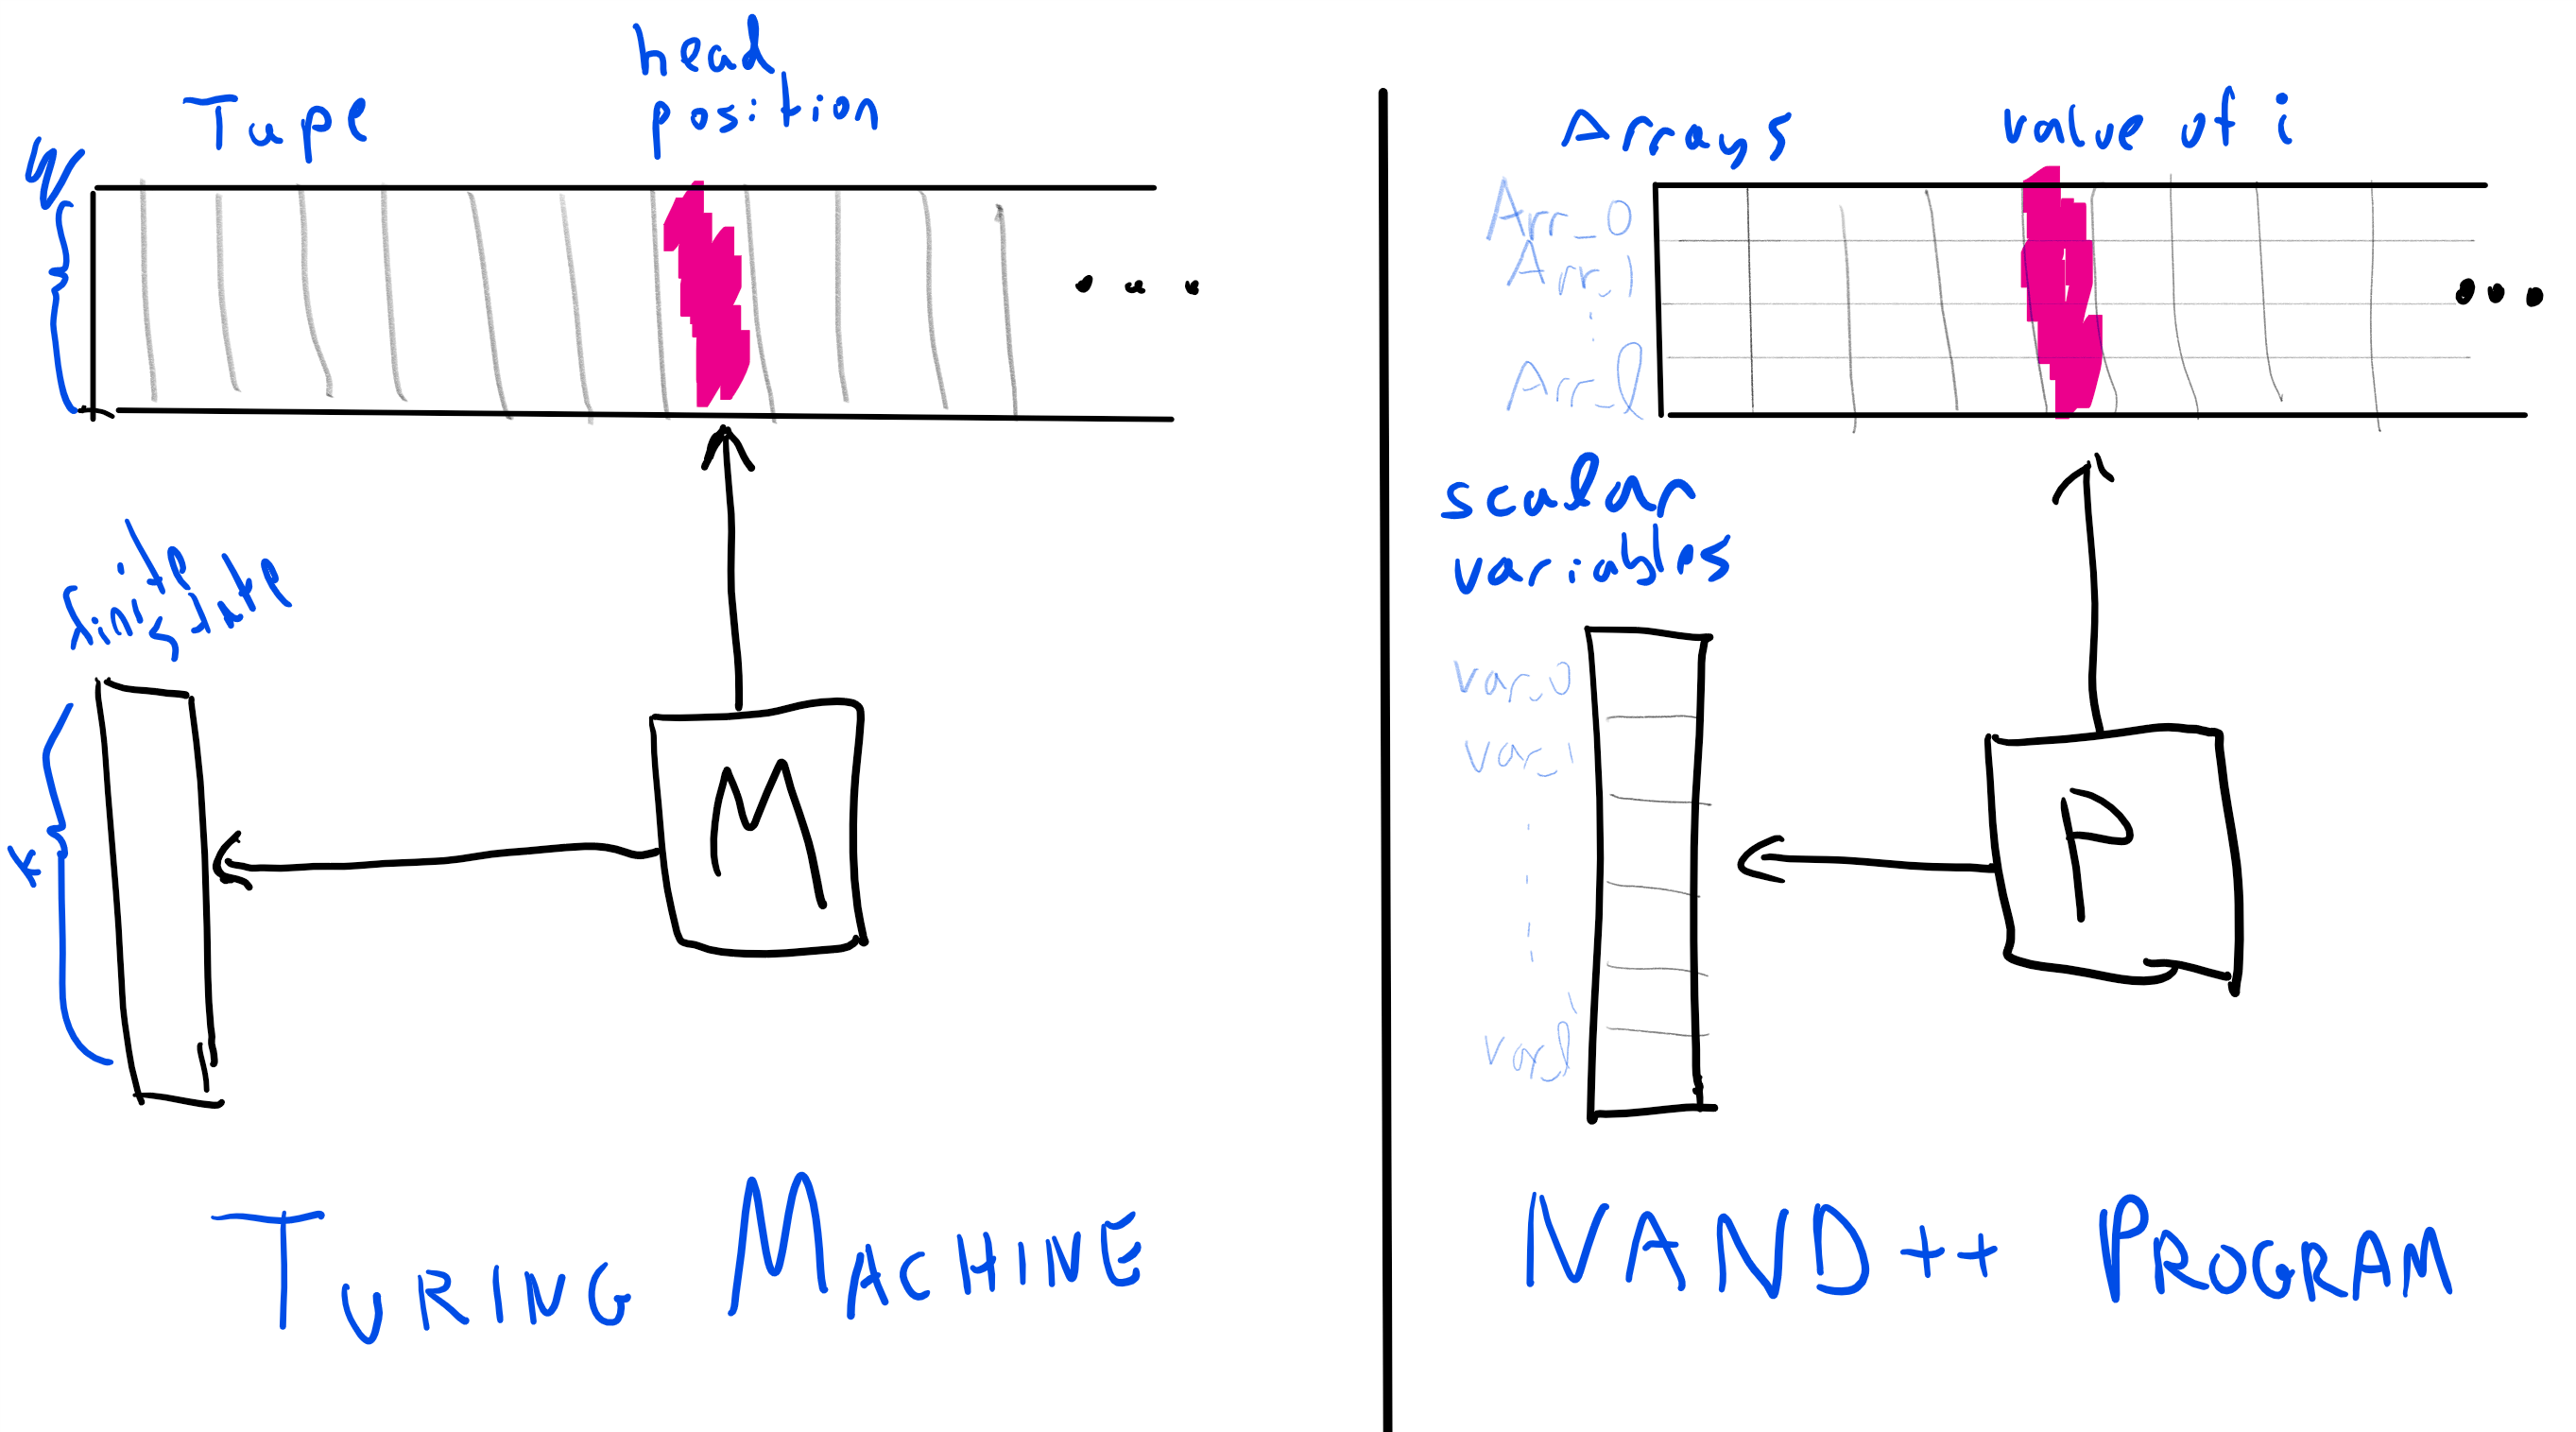 """Comparing a Turing Machine to a NAND-TM program. Both have an unbounded memory component (the tape for a Turing machine, and the arrays for a NAND-TM program), as well as a constant local memory (state for a Turing machine, and scalar variables for a NAND-TM program). Both can only access at each step one location of the unbounded memory, this is the """"head"""" location for a Turing machine, and the value of the index variable i for a NAND-TM program."""